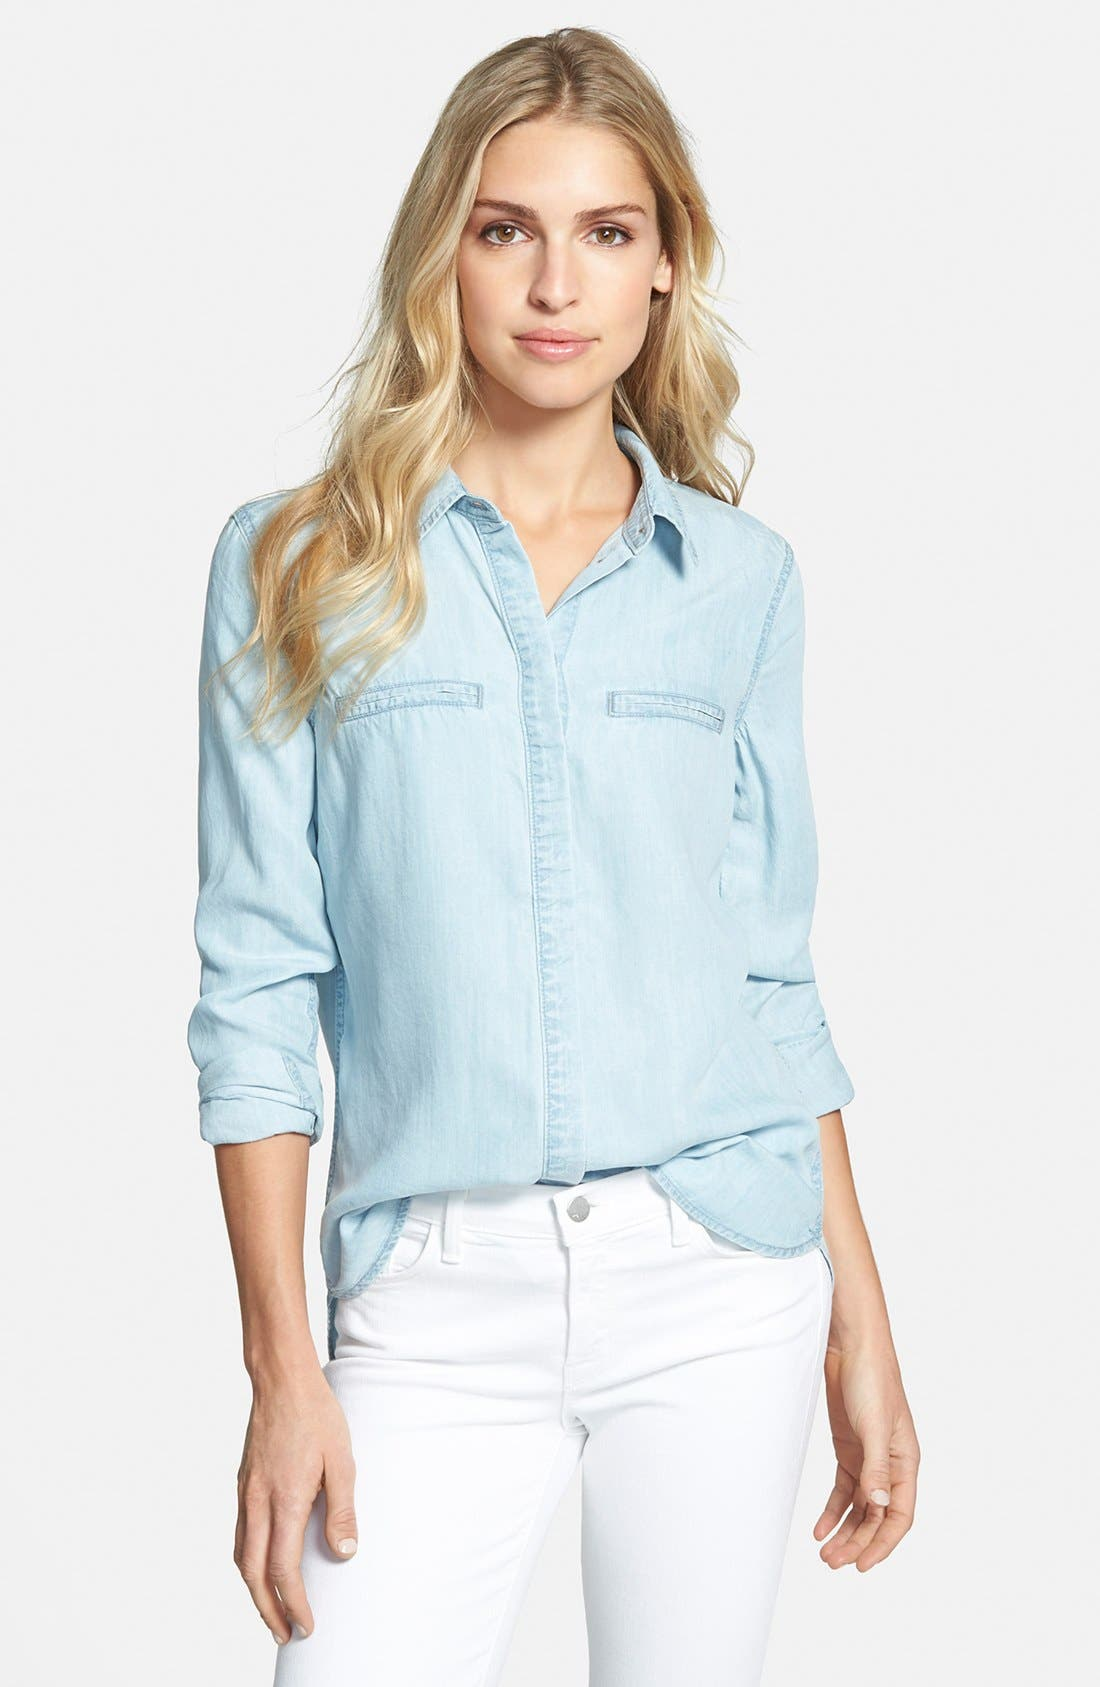 PAIGE, Denim 'Bellamy' Button Front Denim Shirt, Main thumbnail 1, color, 400